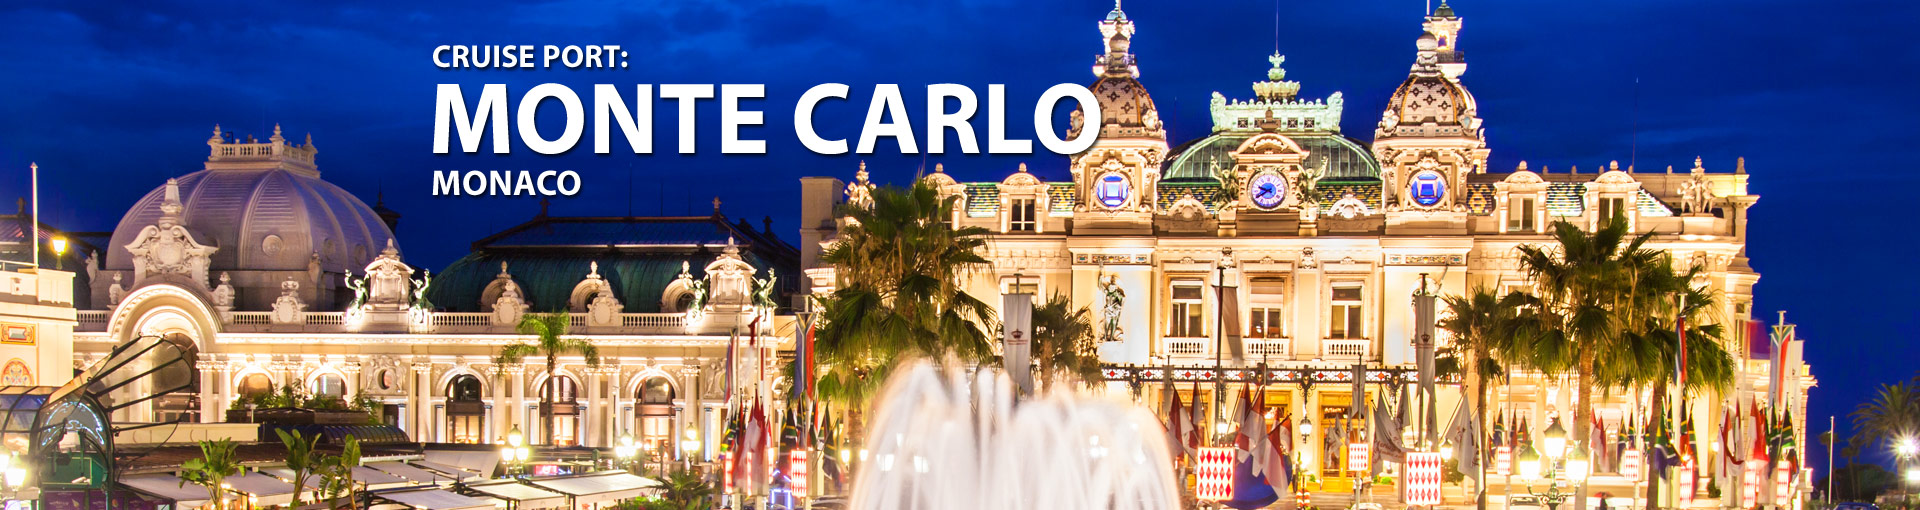 Cruises from Monte Carlo, Monaco